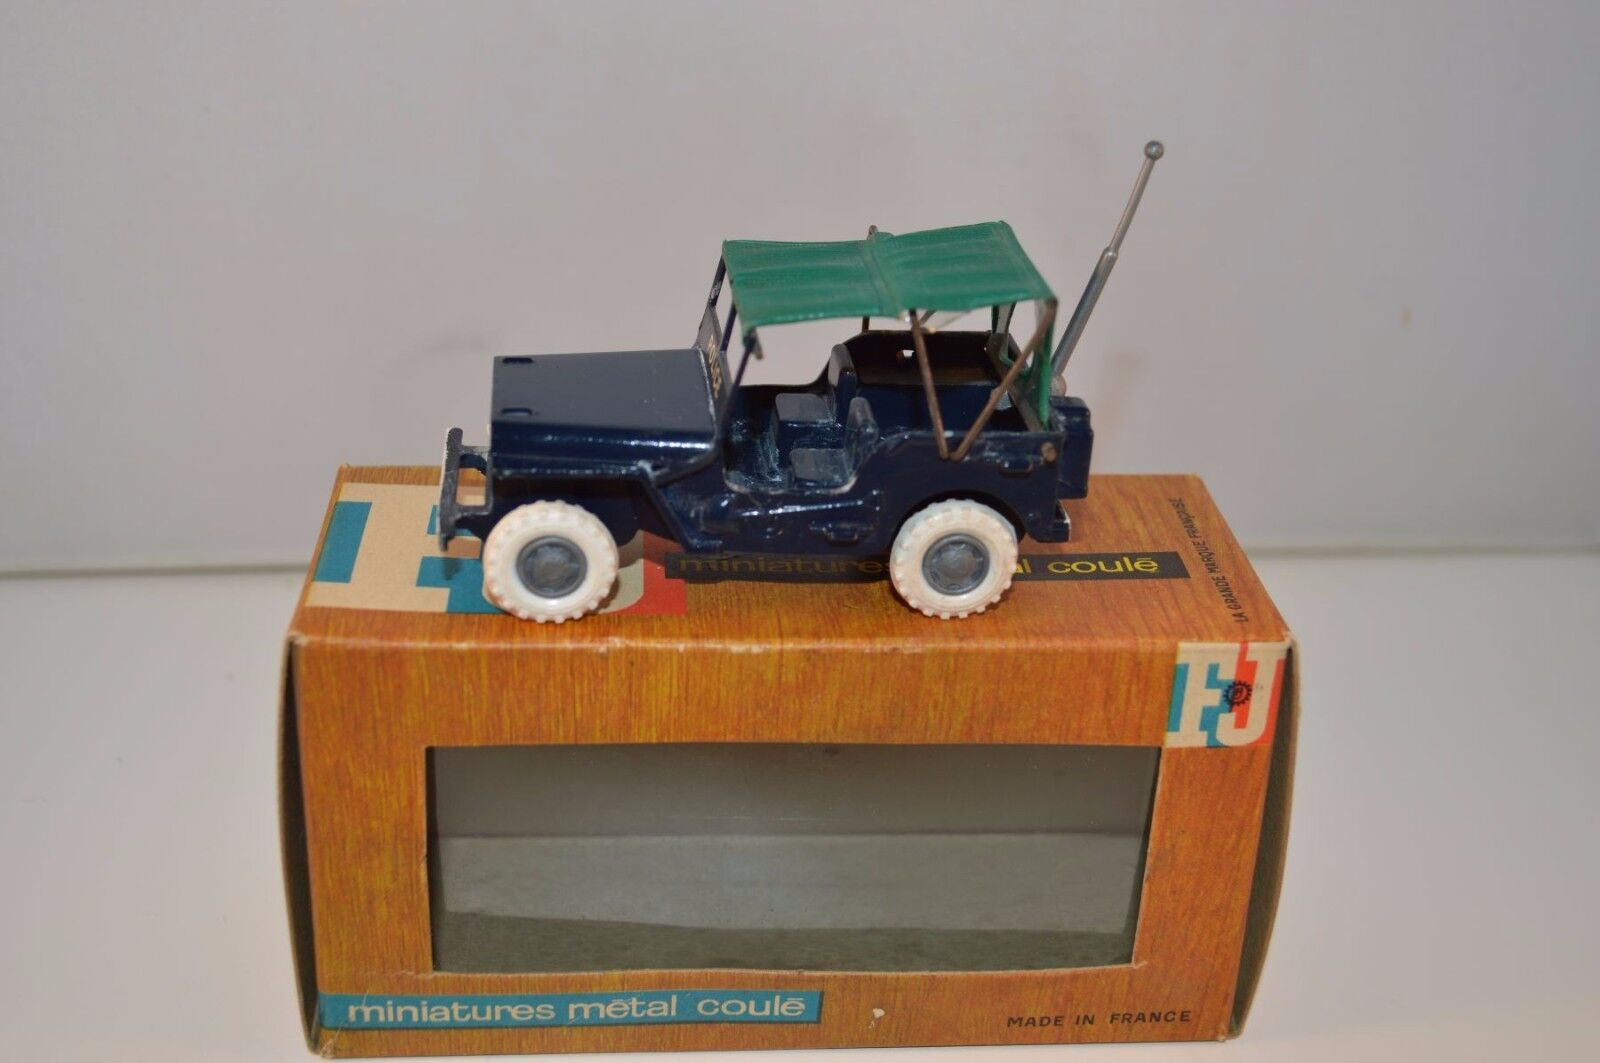 FJ F-J JEEP Vehicle de Police scale 1 43 99.9% mint in box very scarce rare raro